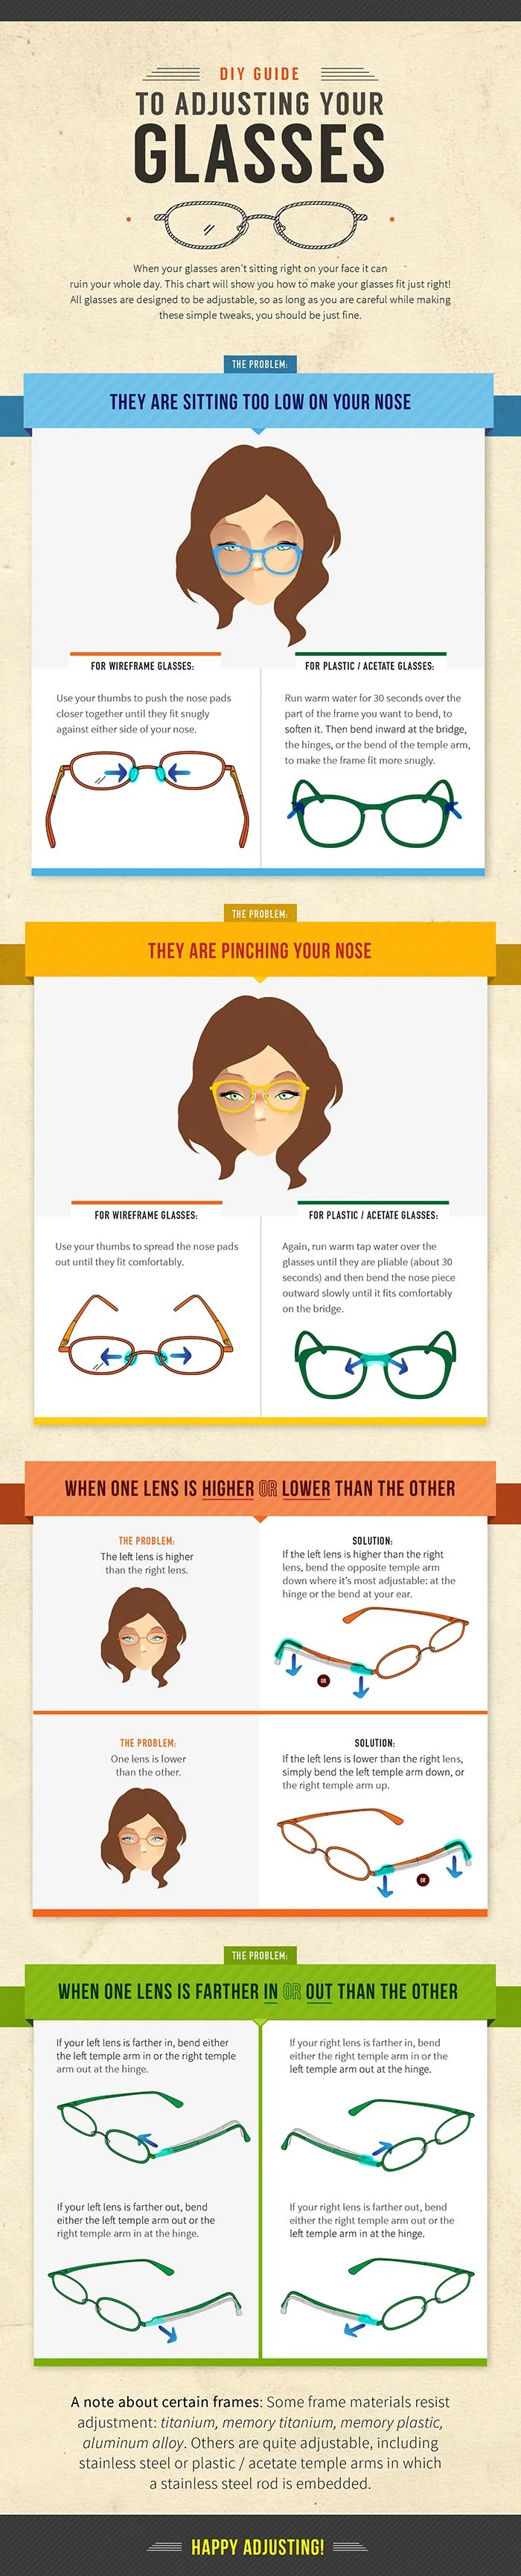 How To Bend Plastic Eyeglass Frames At Home | Framess.co